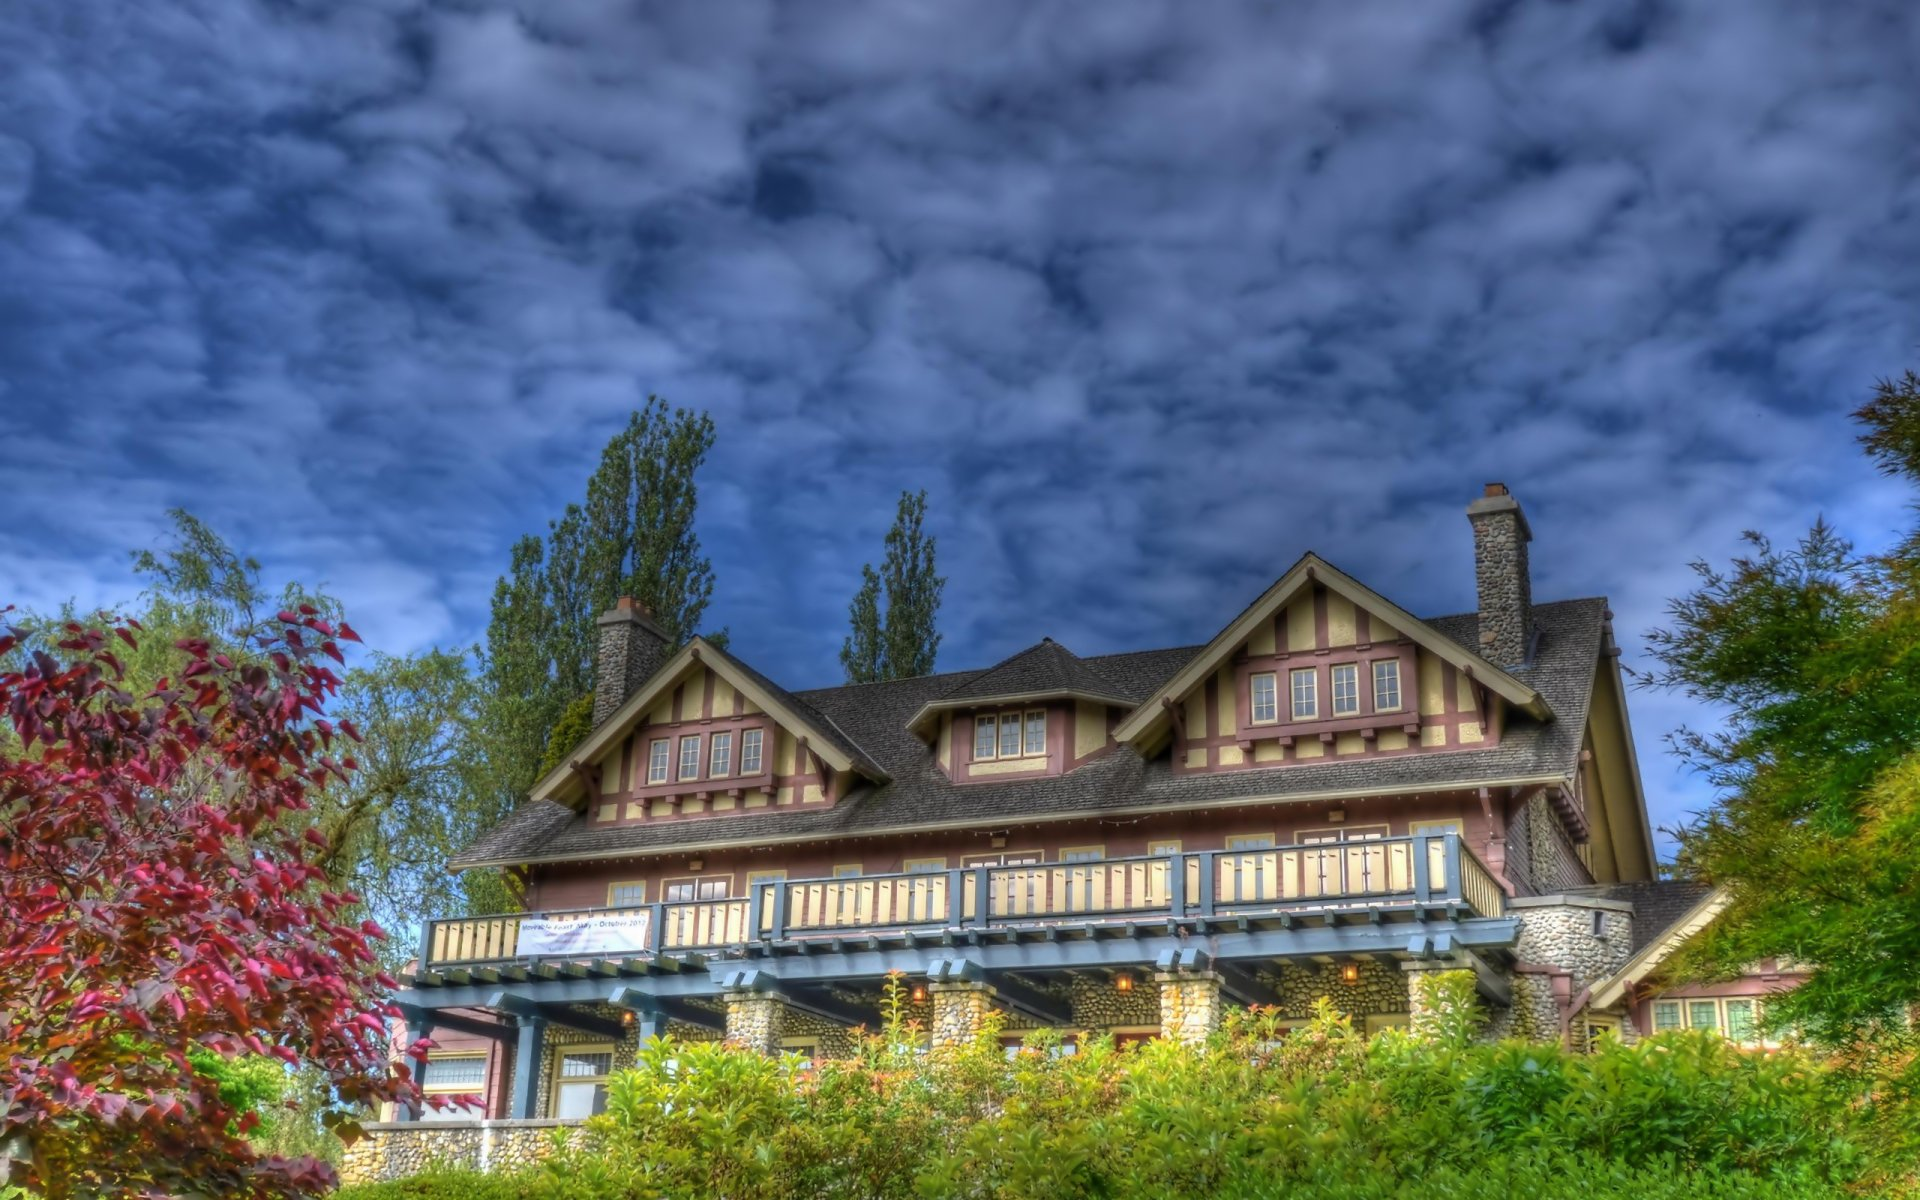 Sweet home hdr hd wallpapers for Wallpaper home sweet home